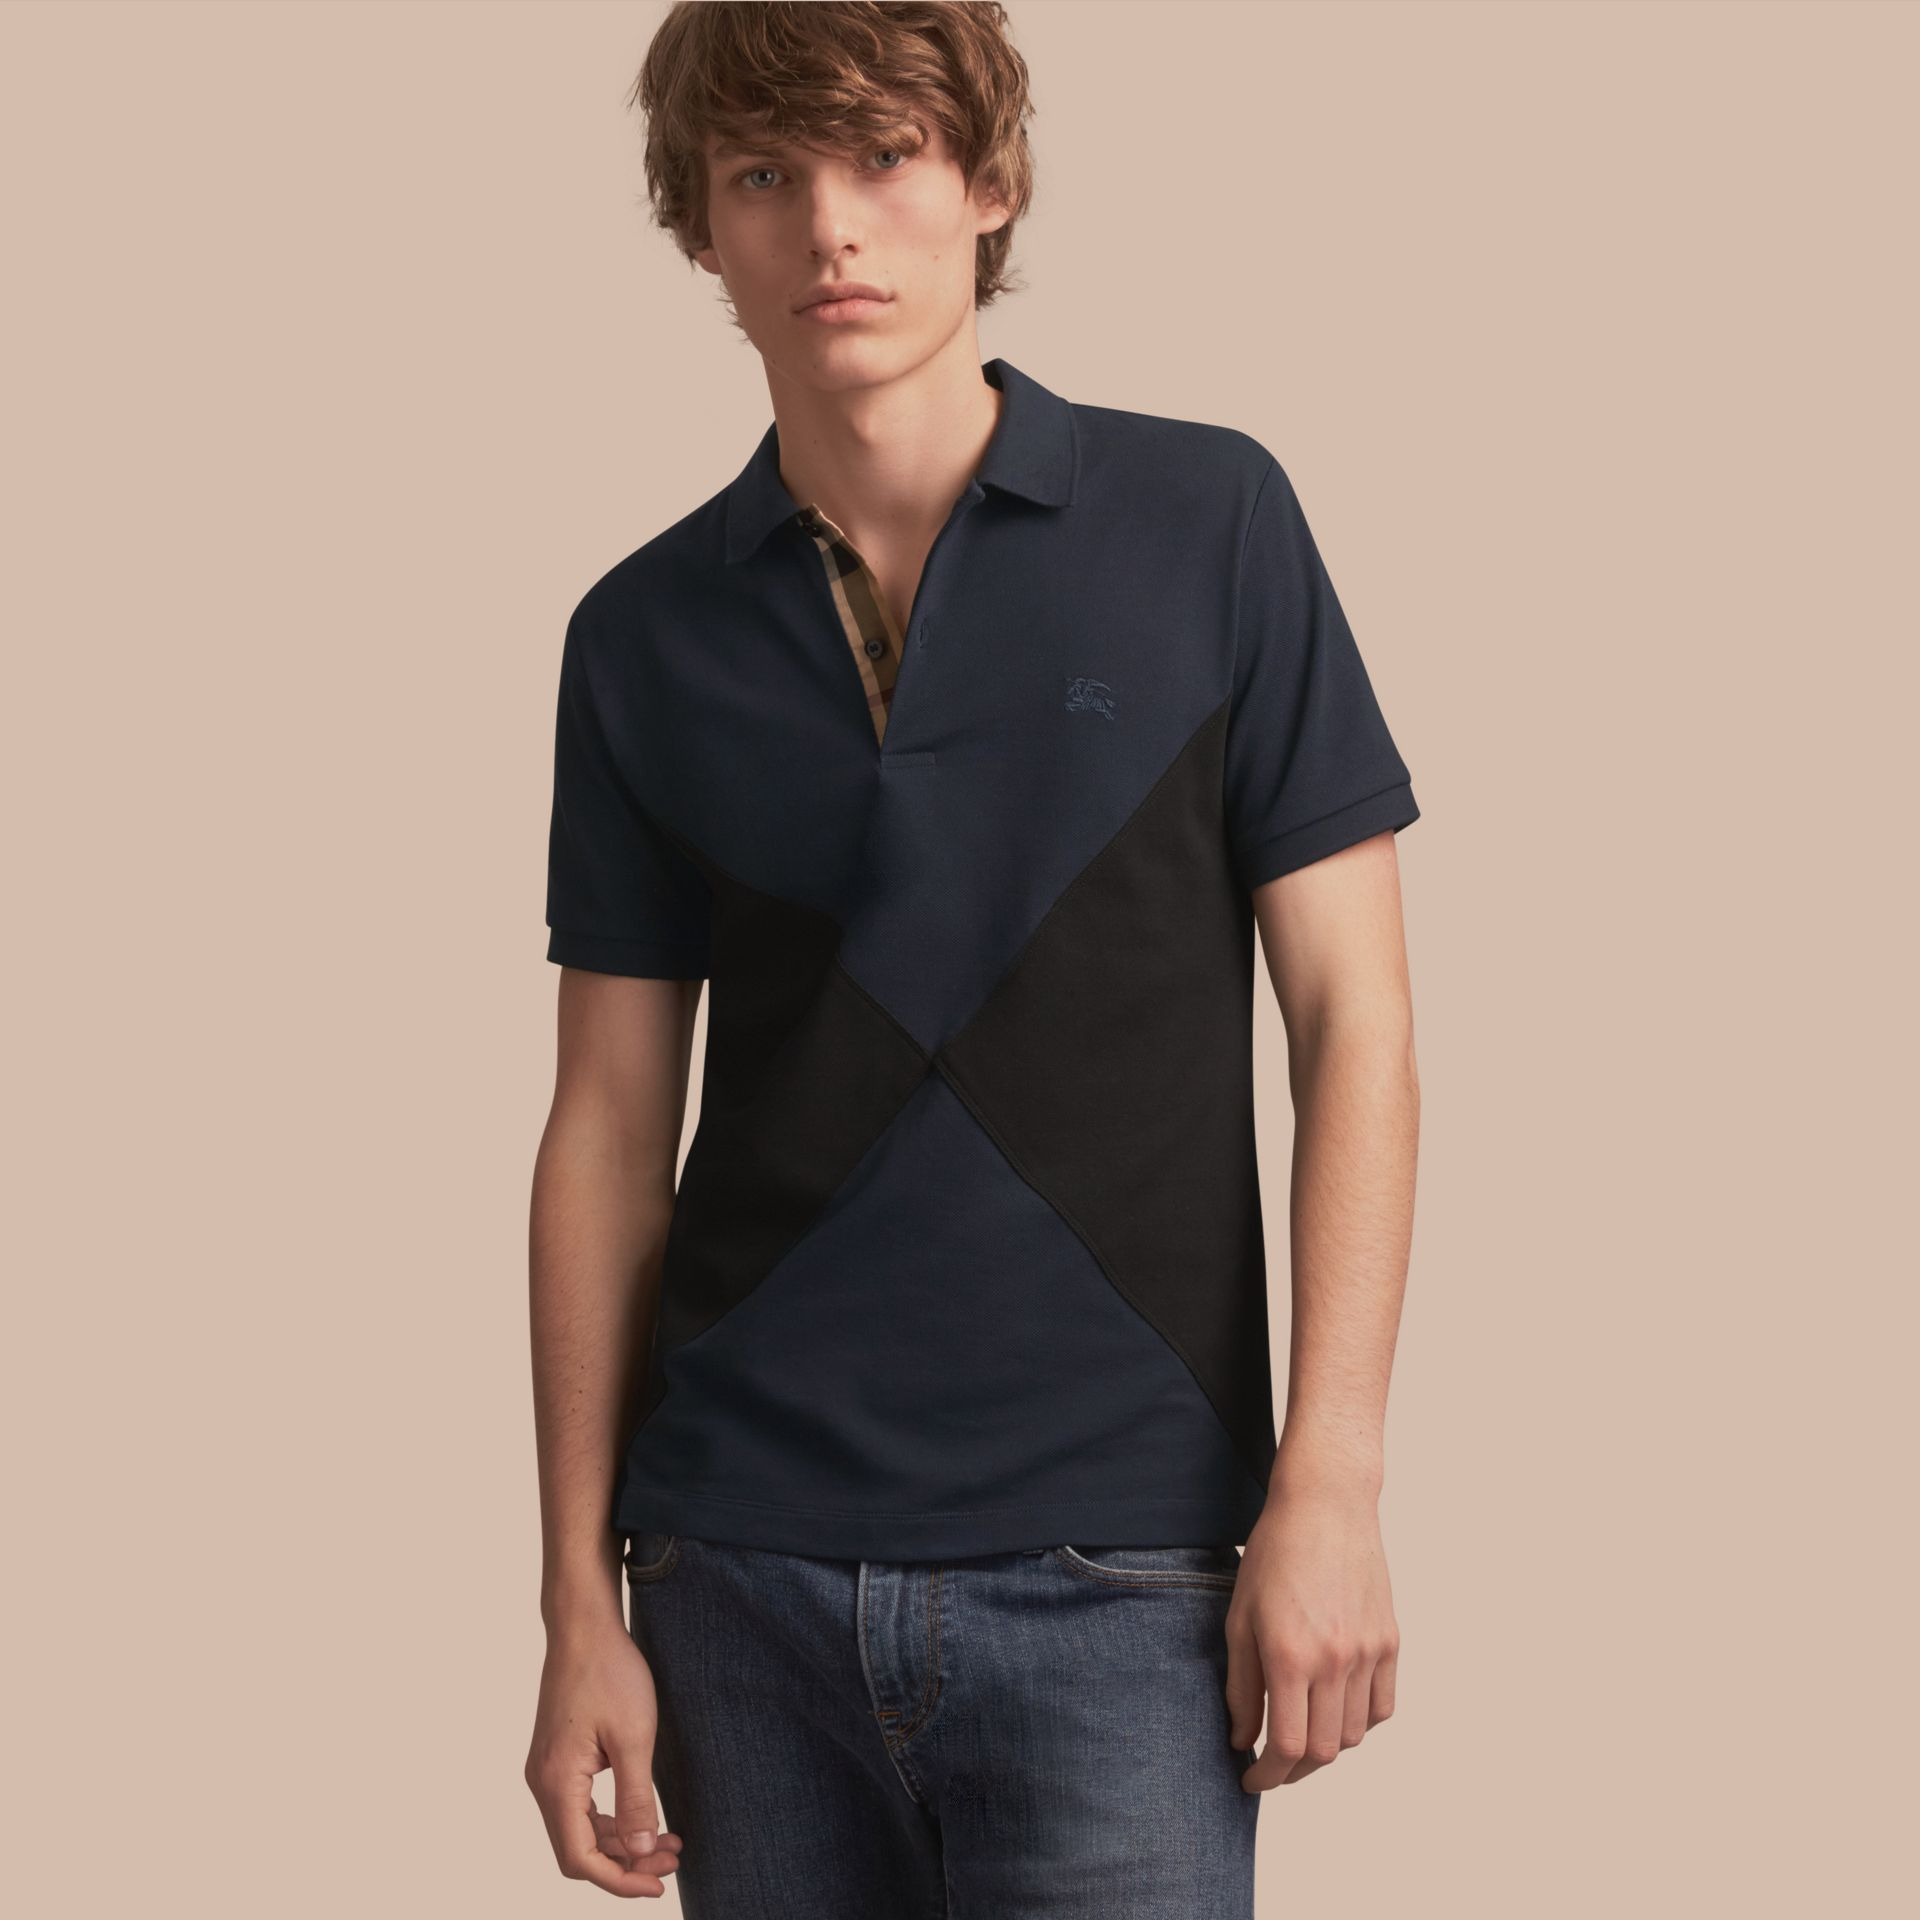 Geometric Motif Cotton Piqué Polo Shirt with Check Placket in Dark Navy - gallery image 1